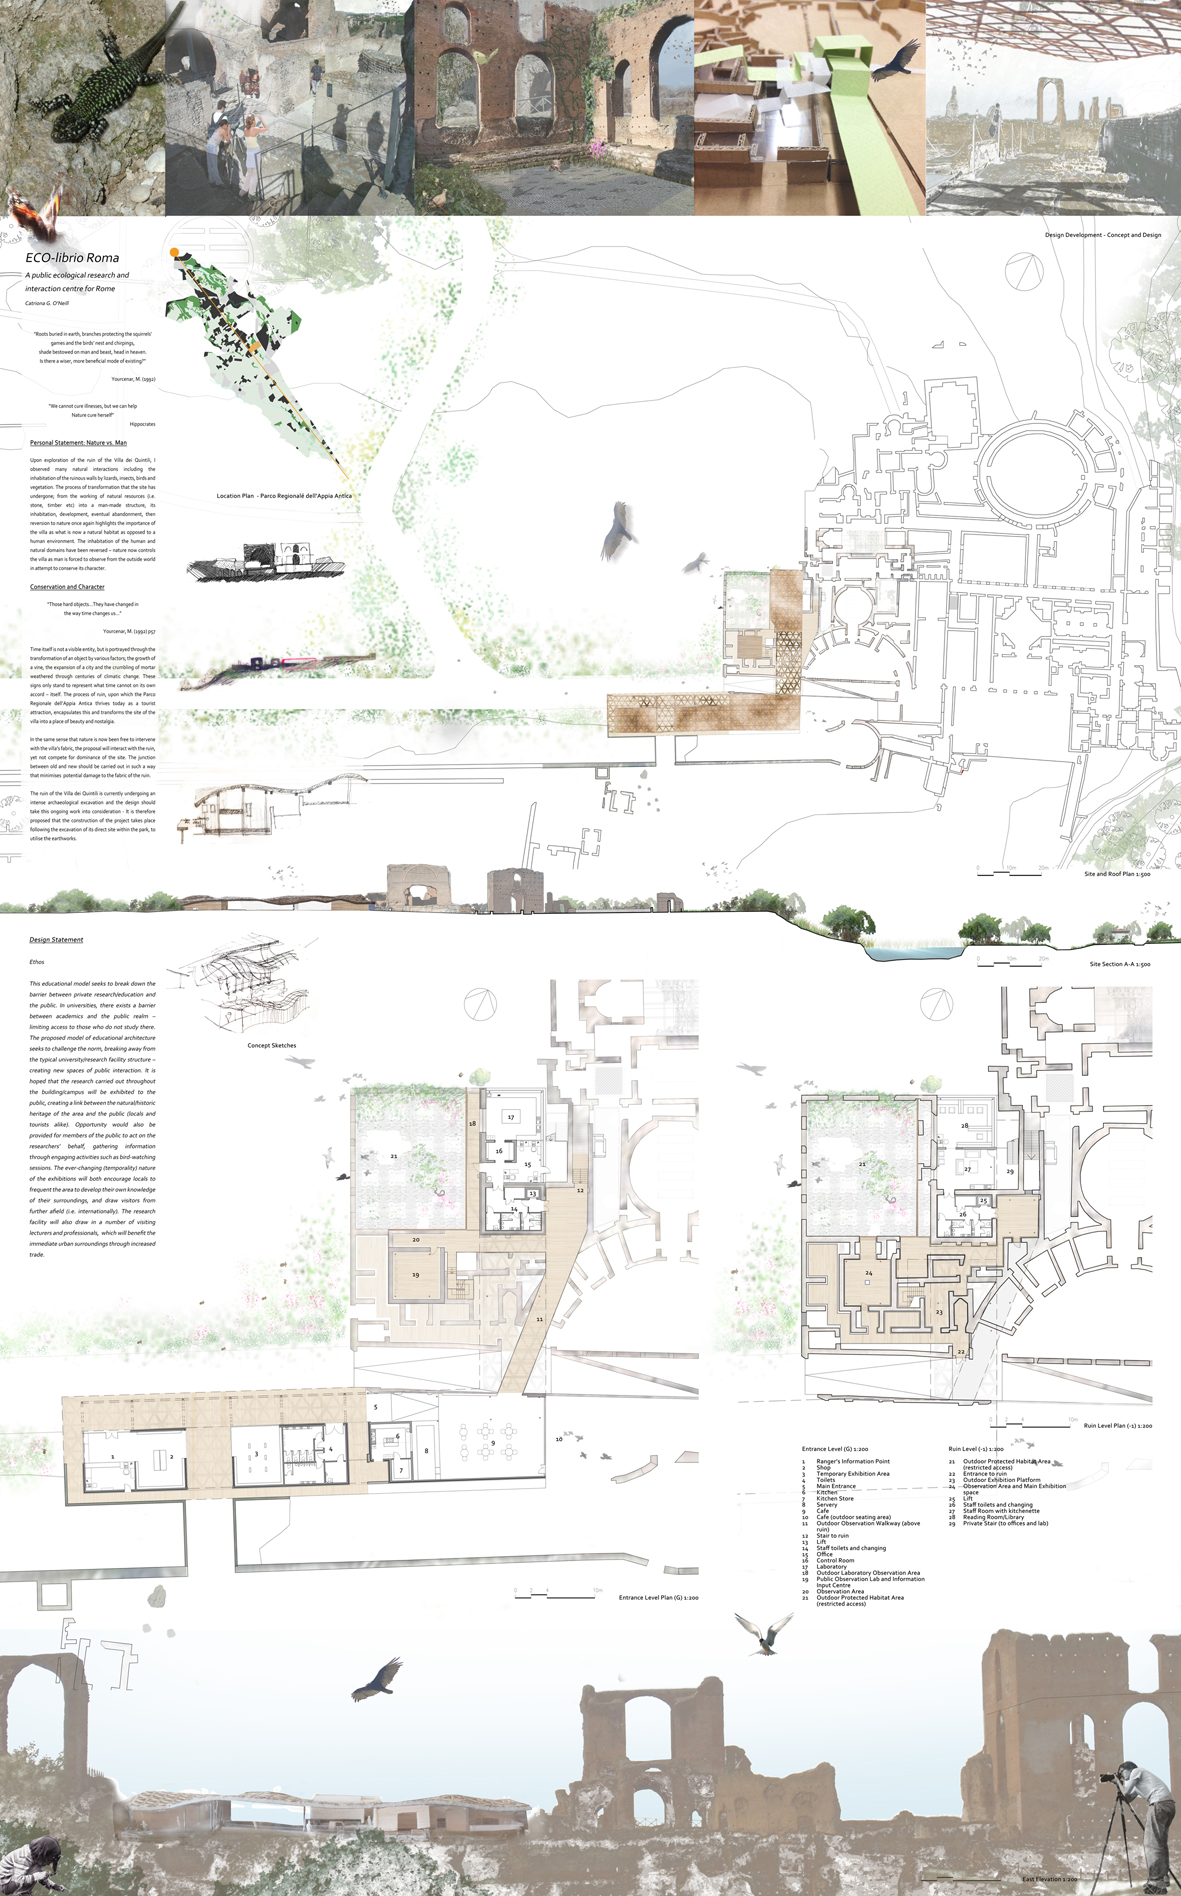 Architecture Design Sheets beautiful architecture design sheets 2majidtorkian with ideas